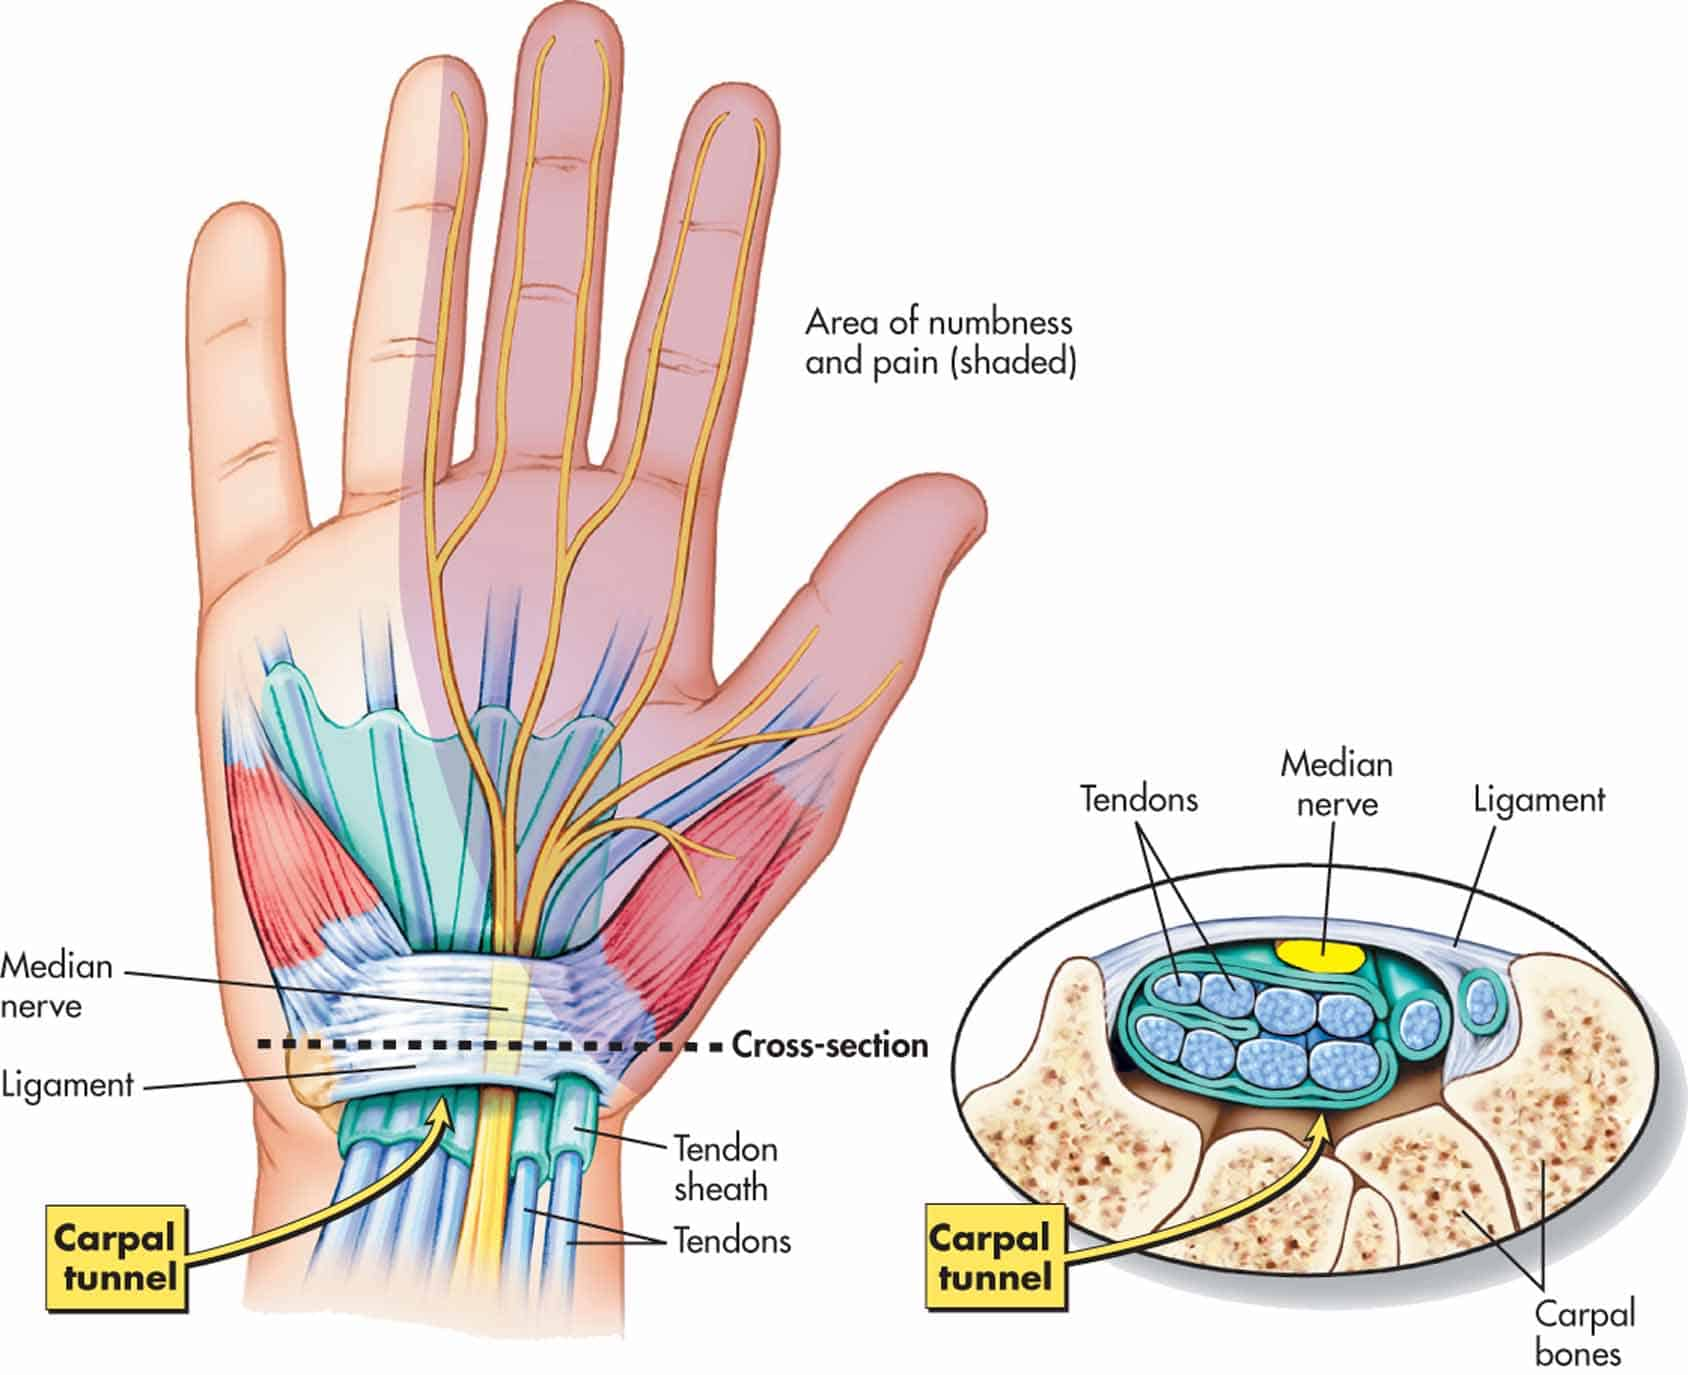 Carpus bones pinterest coloring muscle and hand anatomy - Wrist Anatomy And Carpal Tunnel Syndrome Brace Access Carpal Tunnel Syndrome Cts Monardofo Image Collections